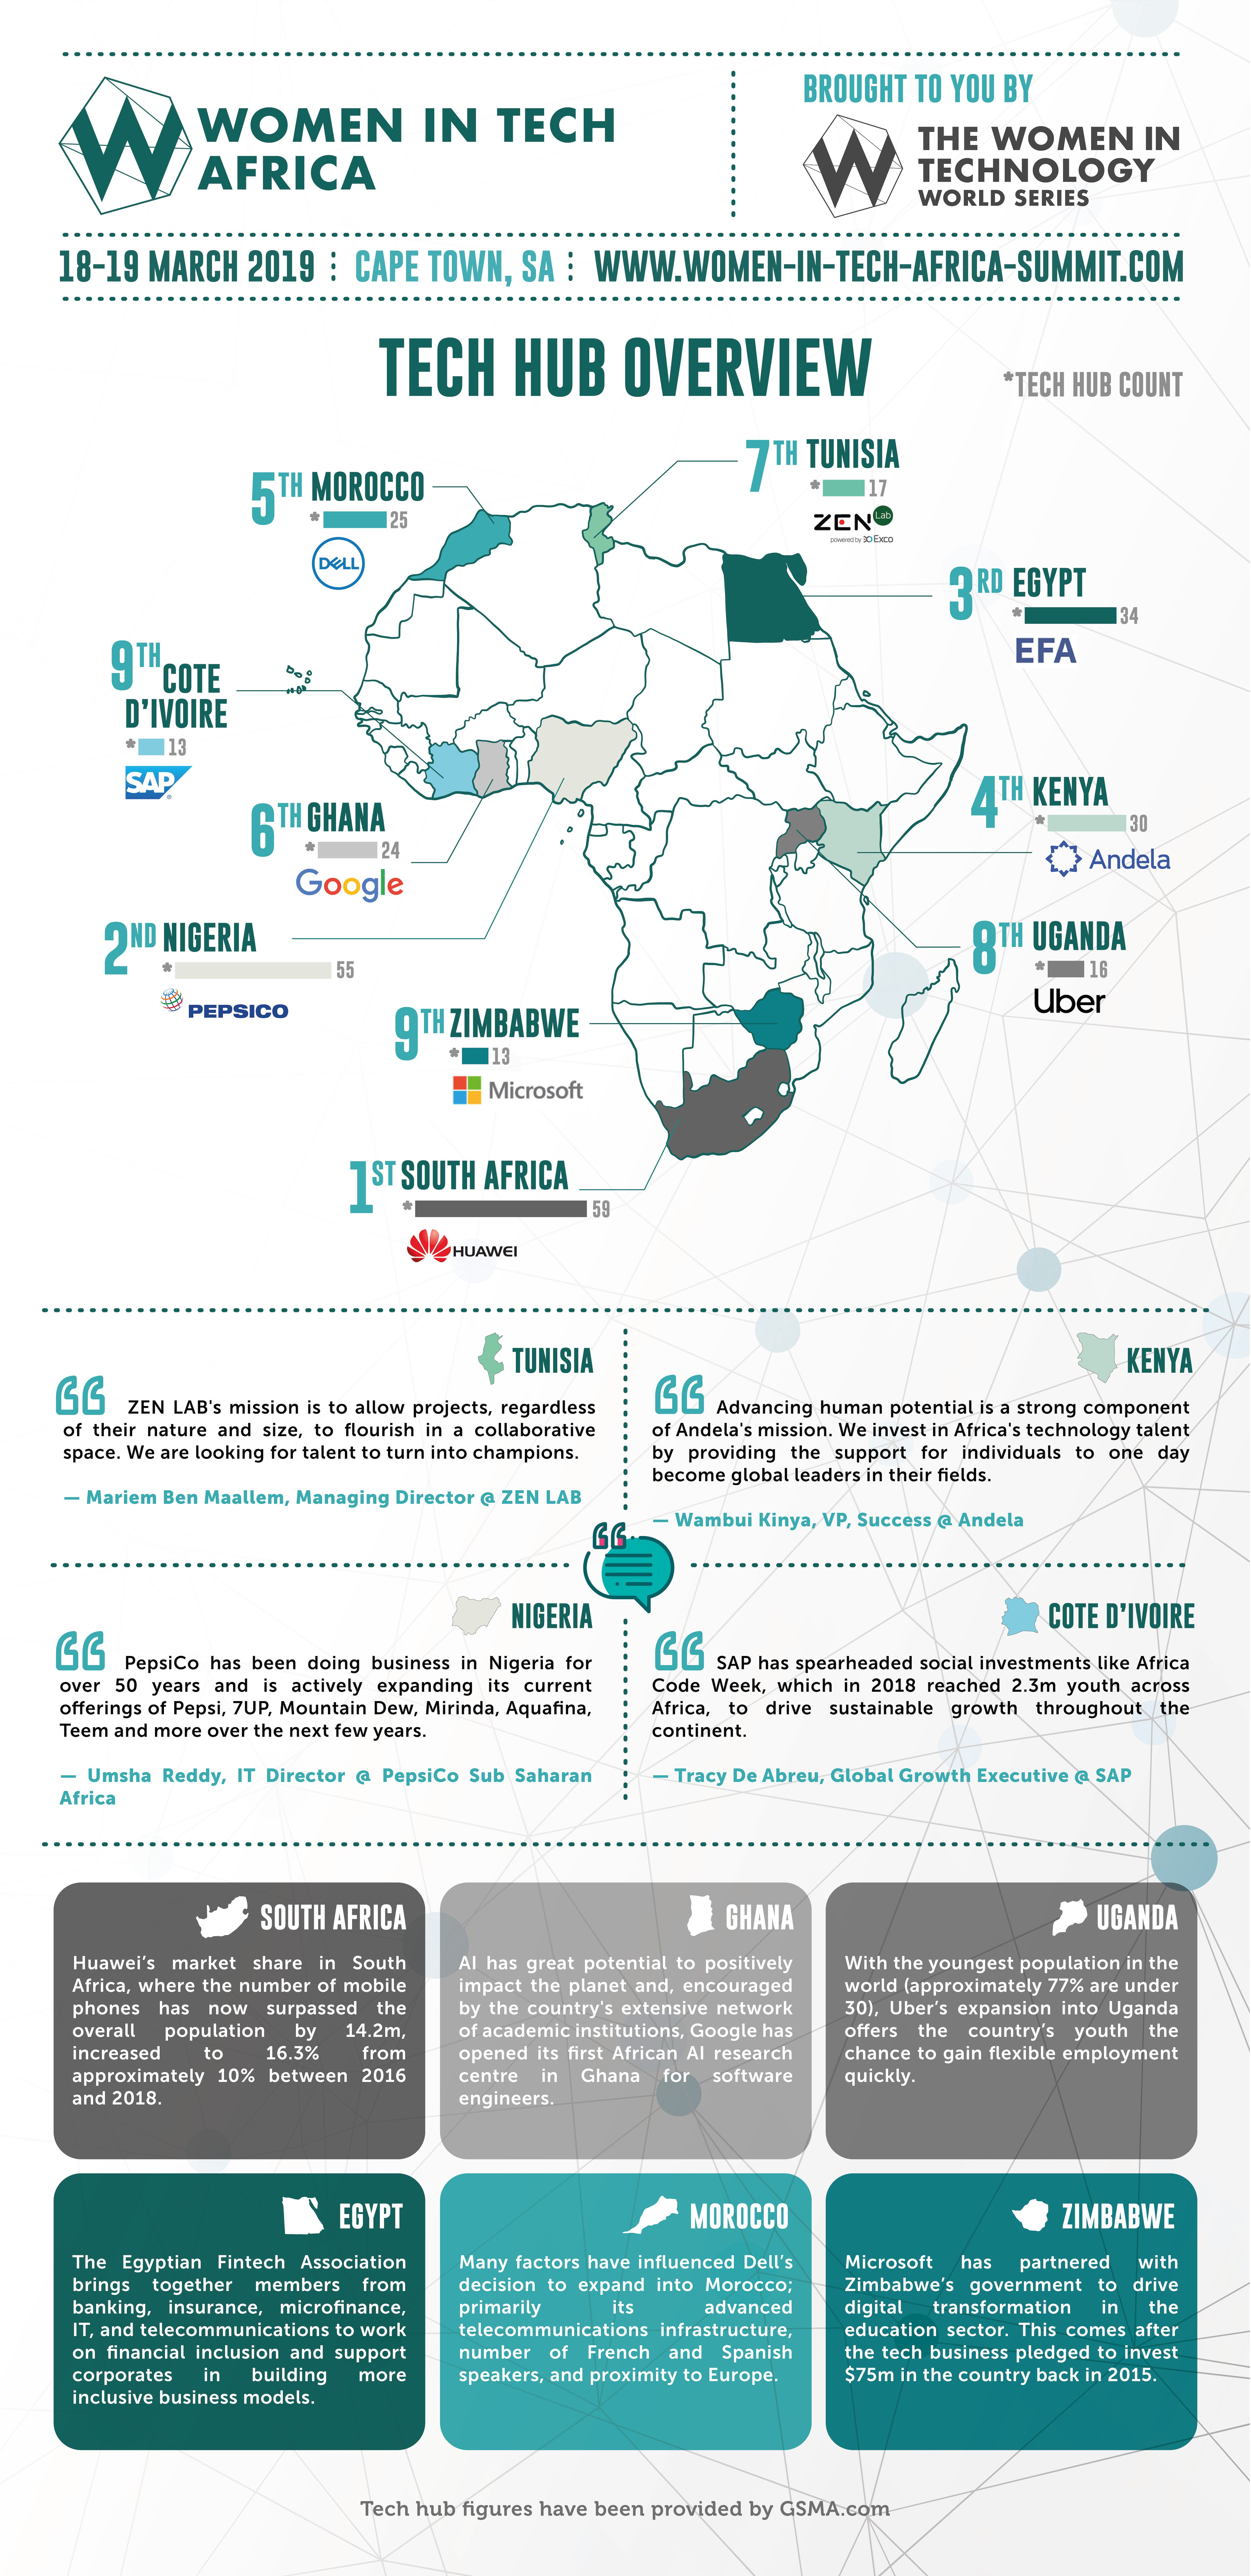 Women-in-Tech-Africa-Infographic